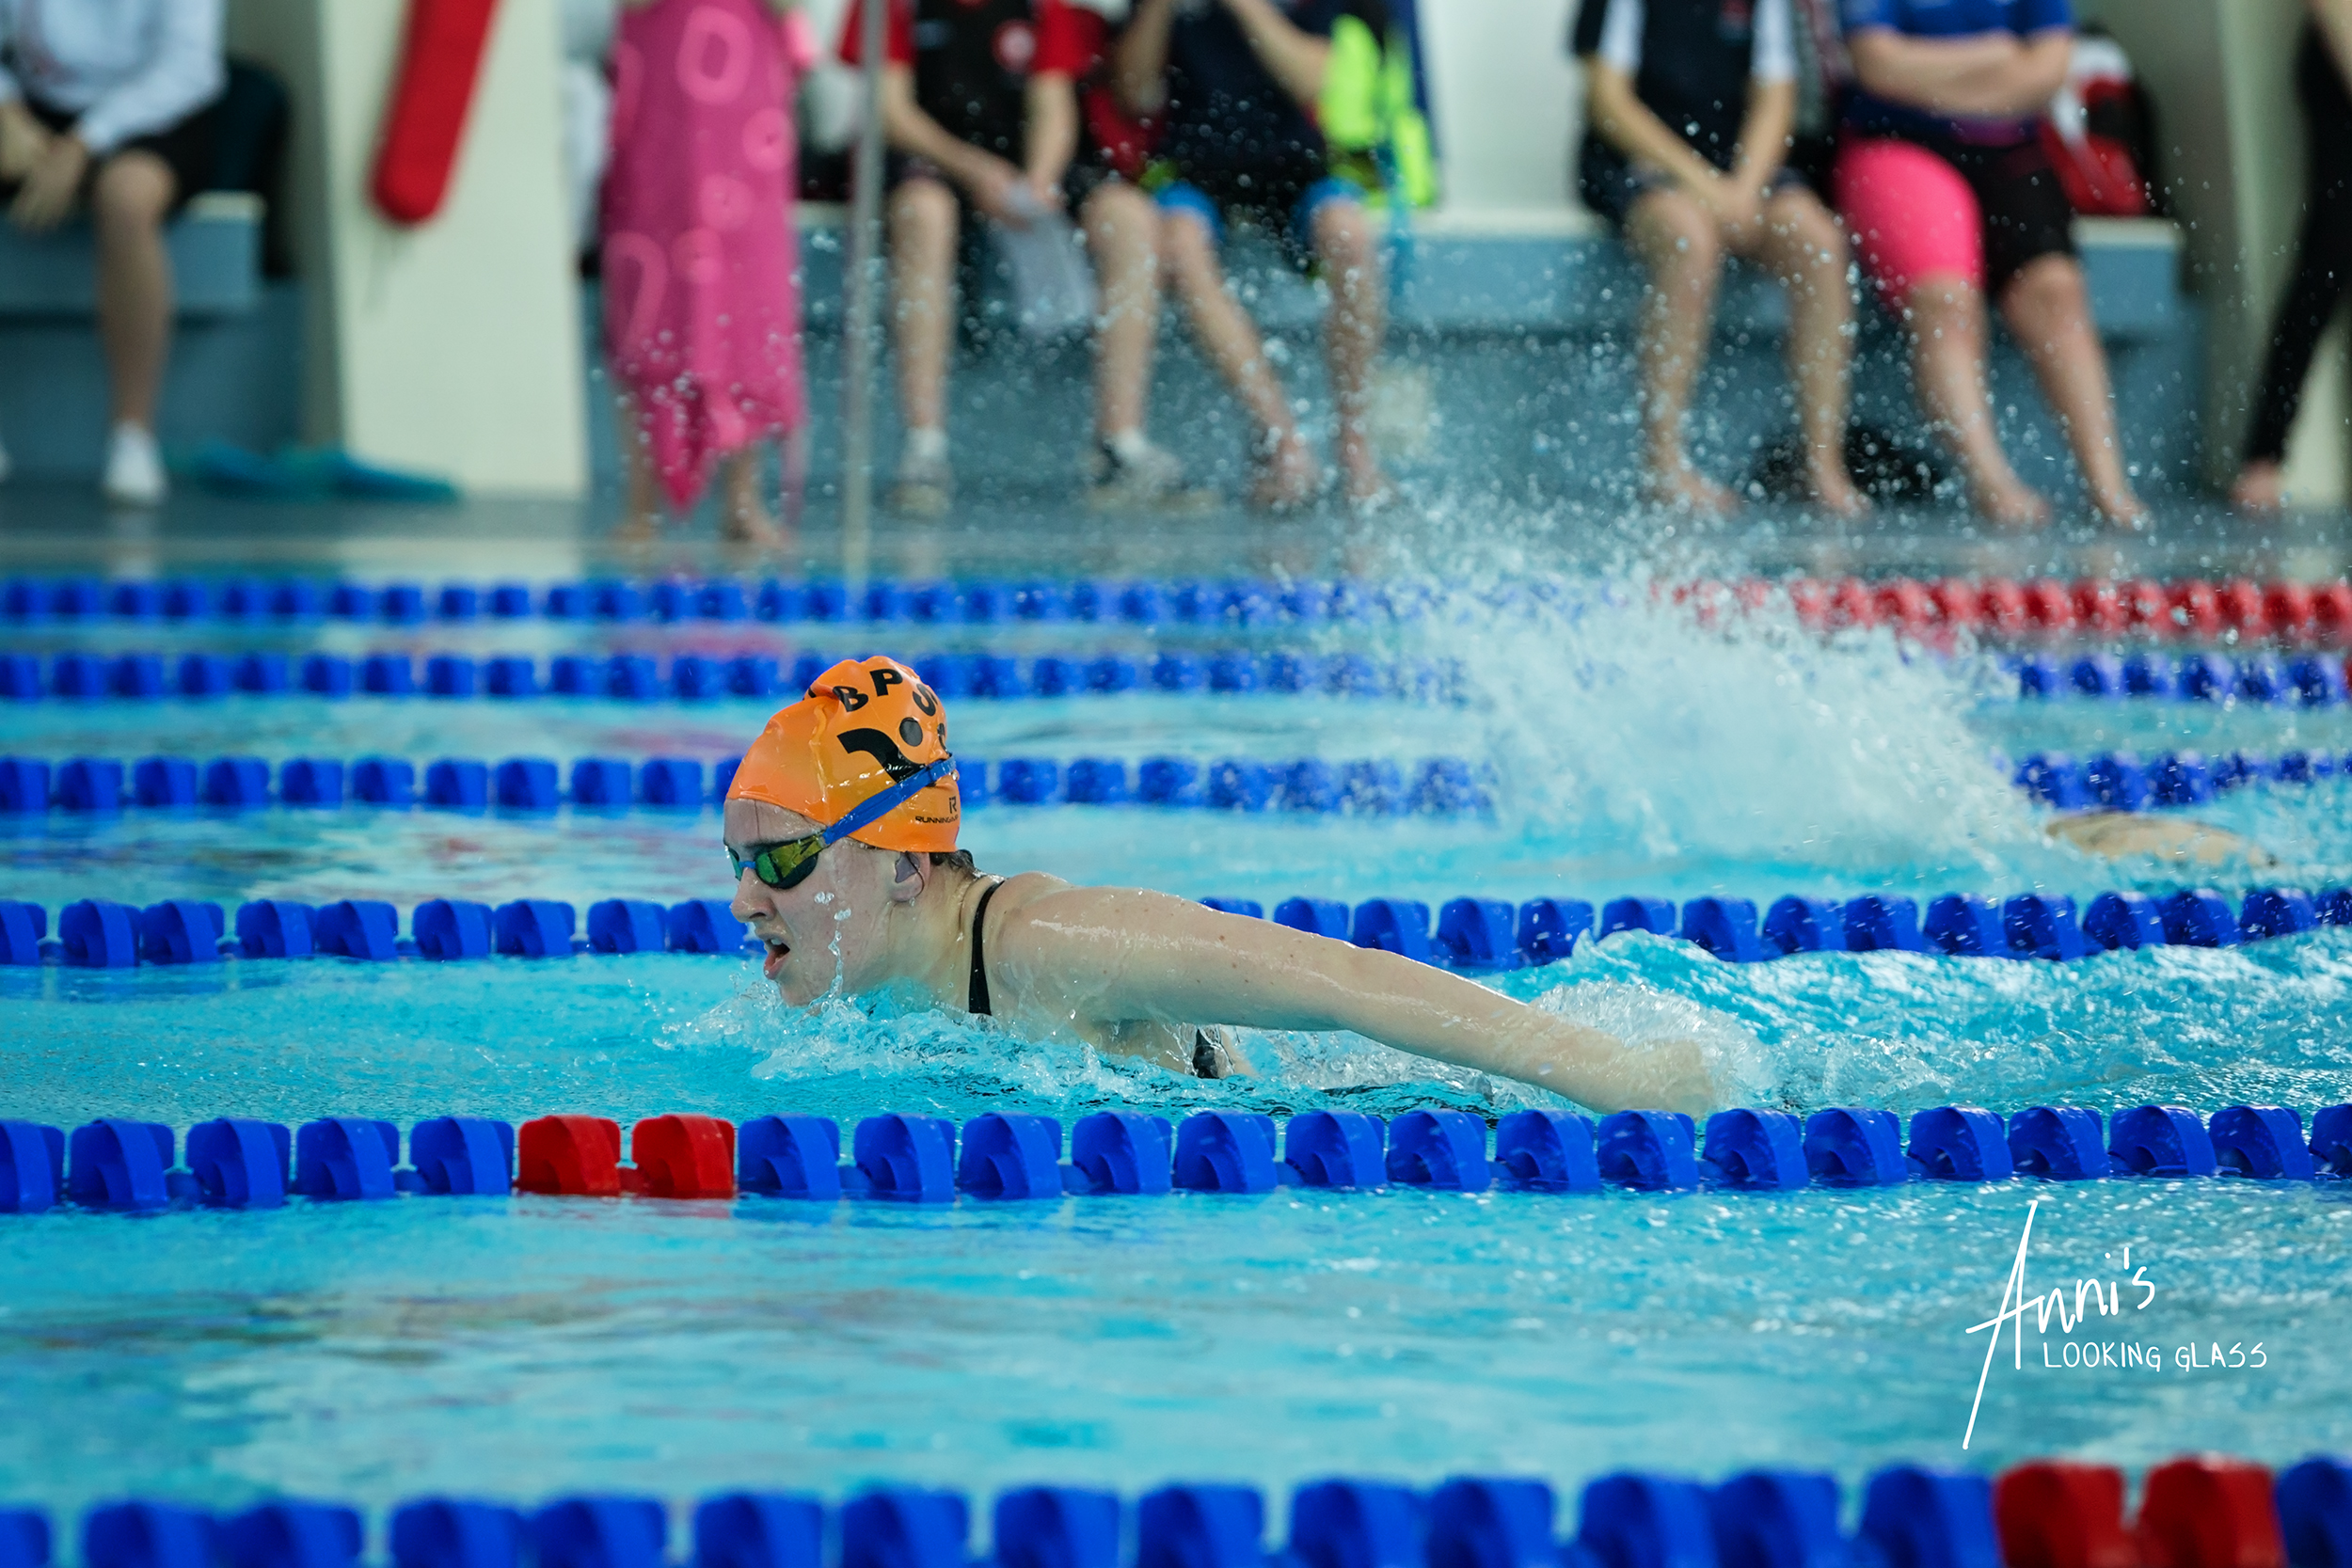 Loughborough Photographer: A young woman in a swimming race at Loughborough University's pool. 24th March 2018